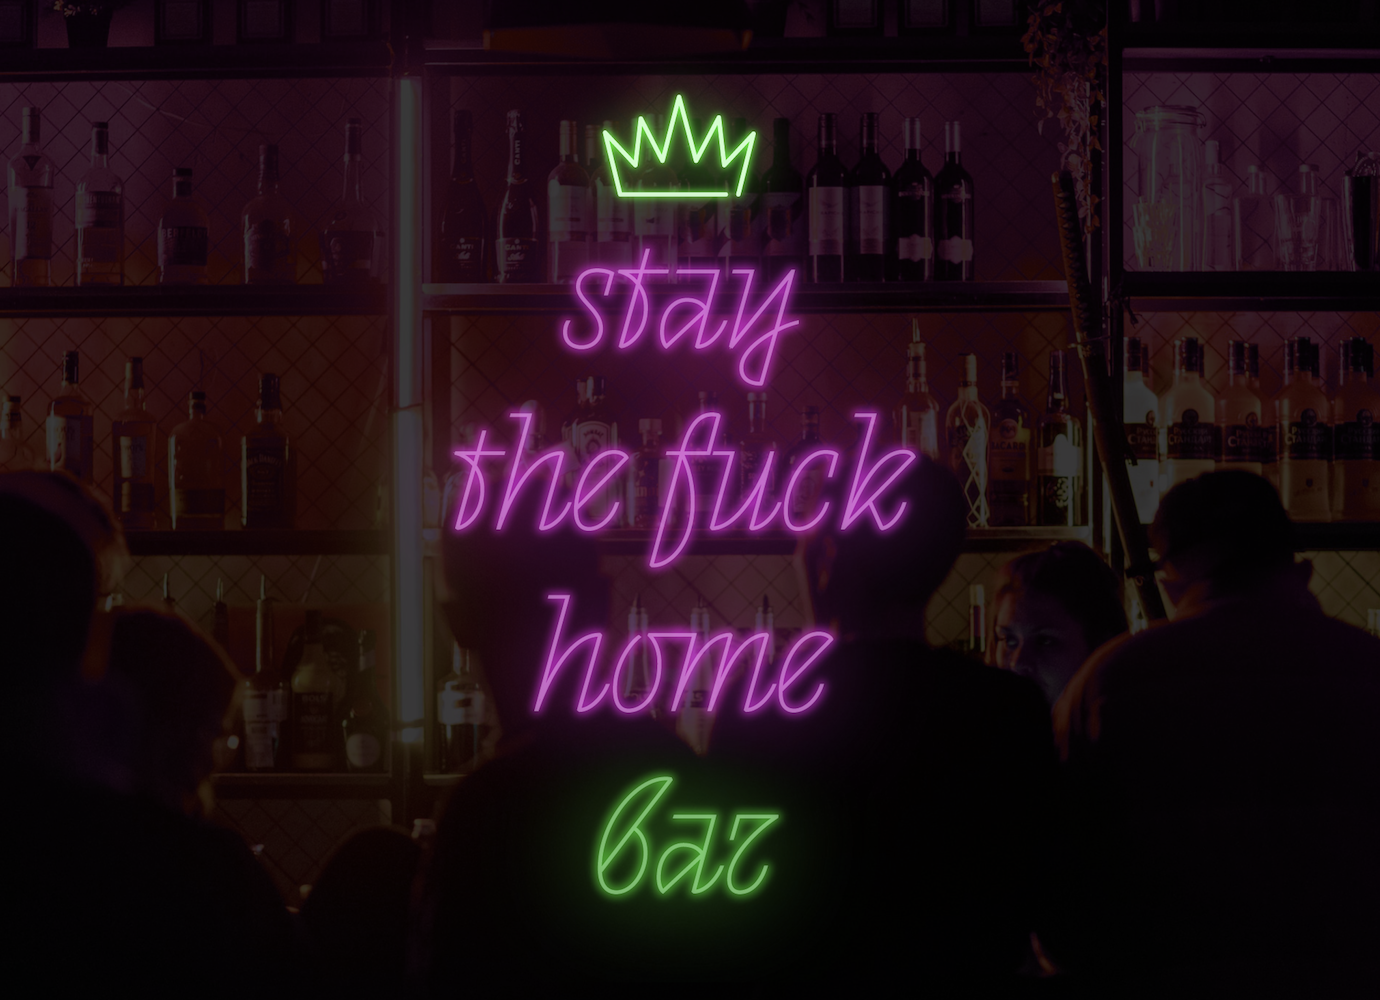 #Staythefuckhome: visit the online bar that just opened in St Petersburg